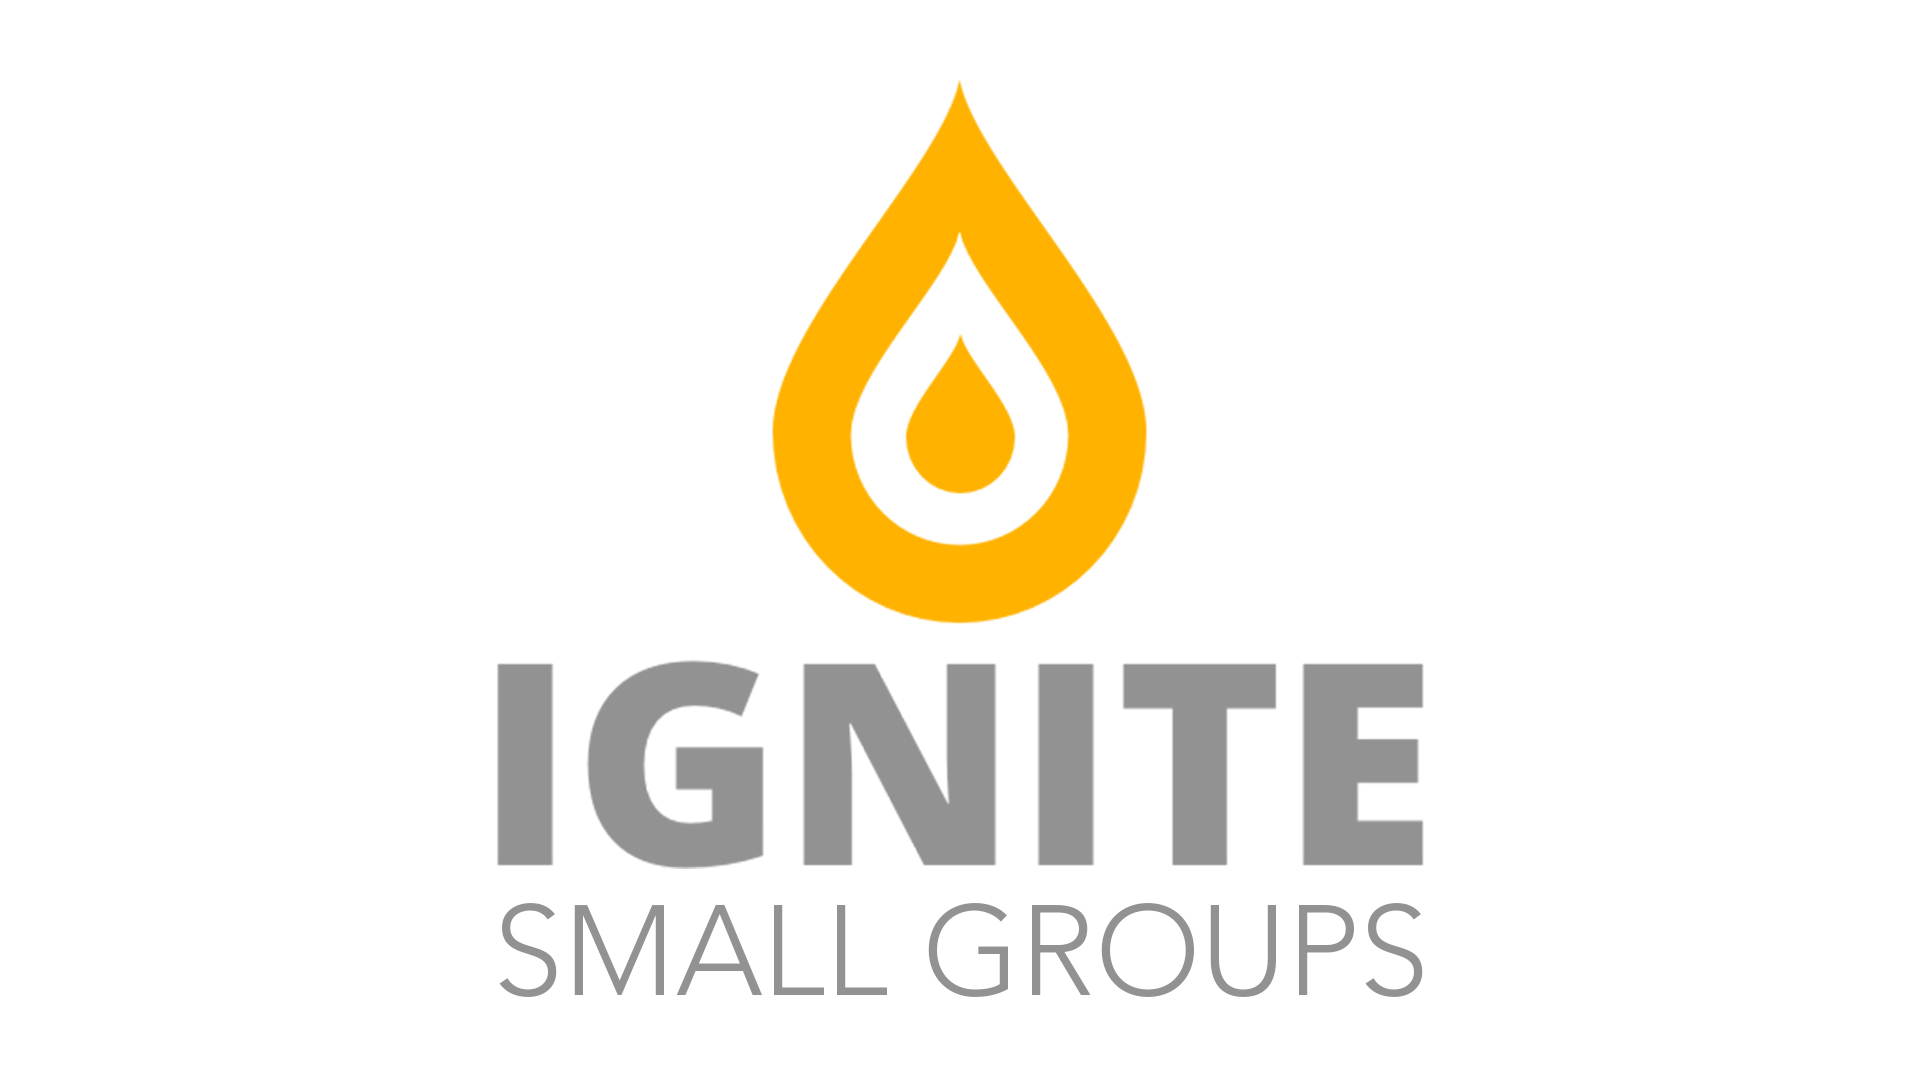 Ignite Small Groups.jpg